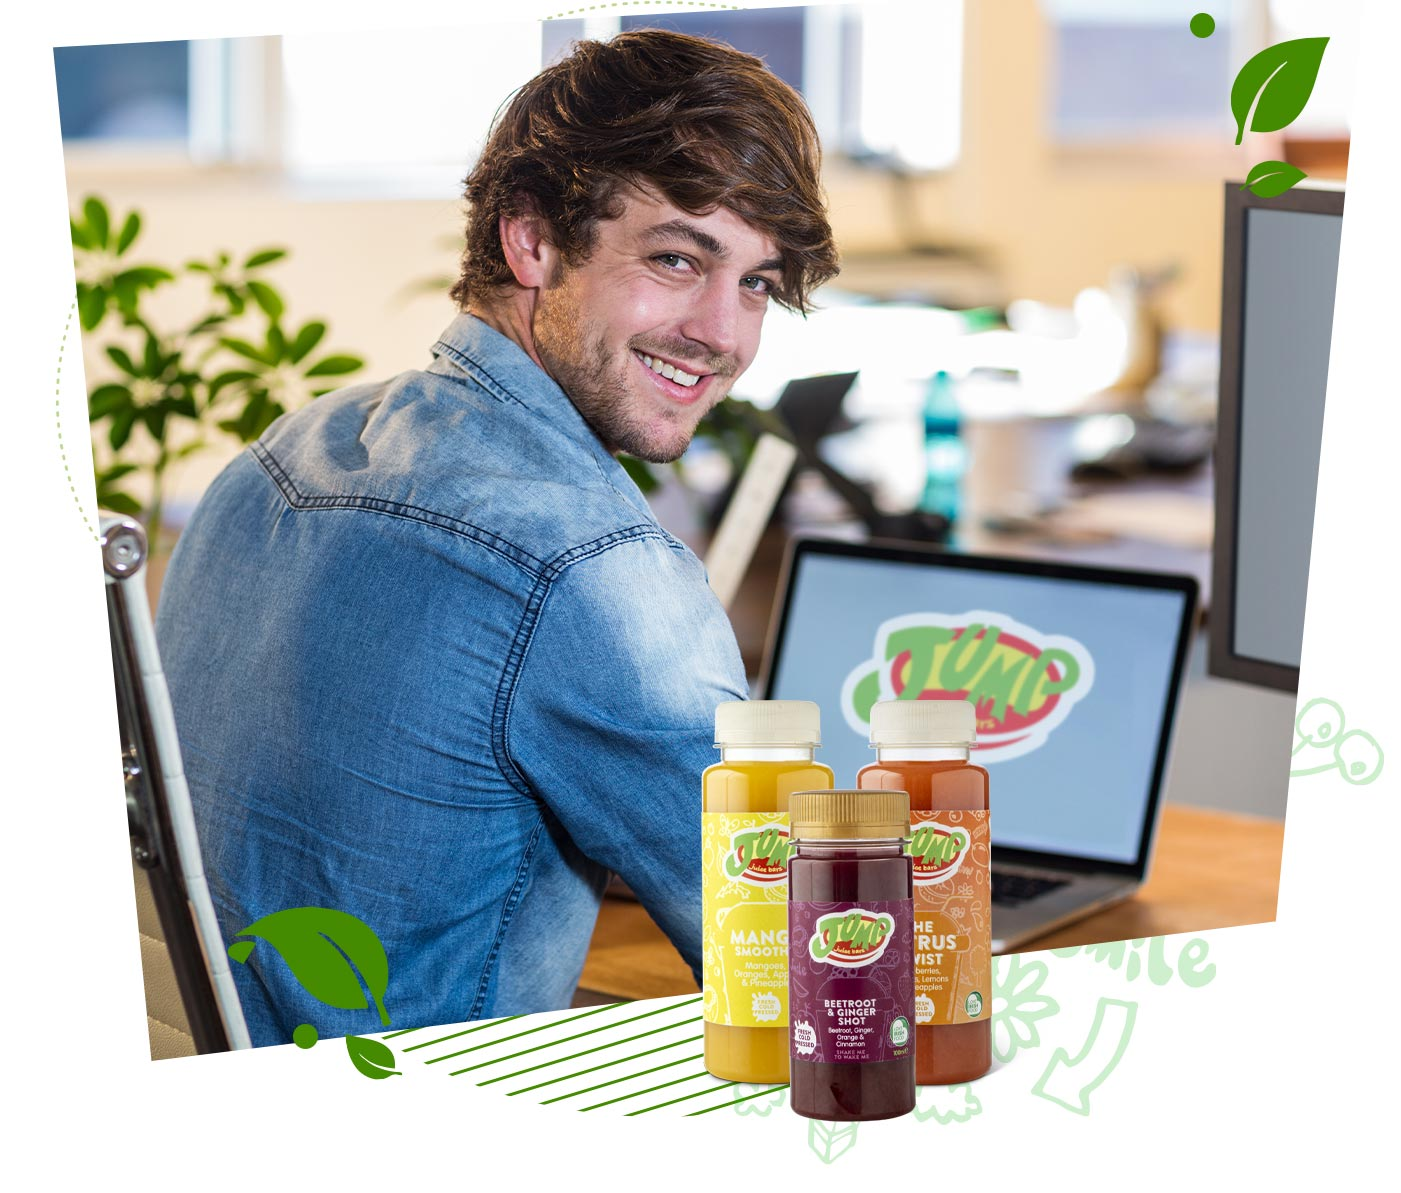 home-and-office-delivery-graphics-4_04 Jump Juice Direct